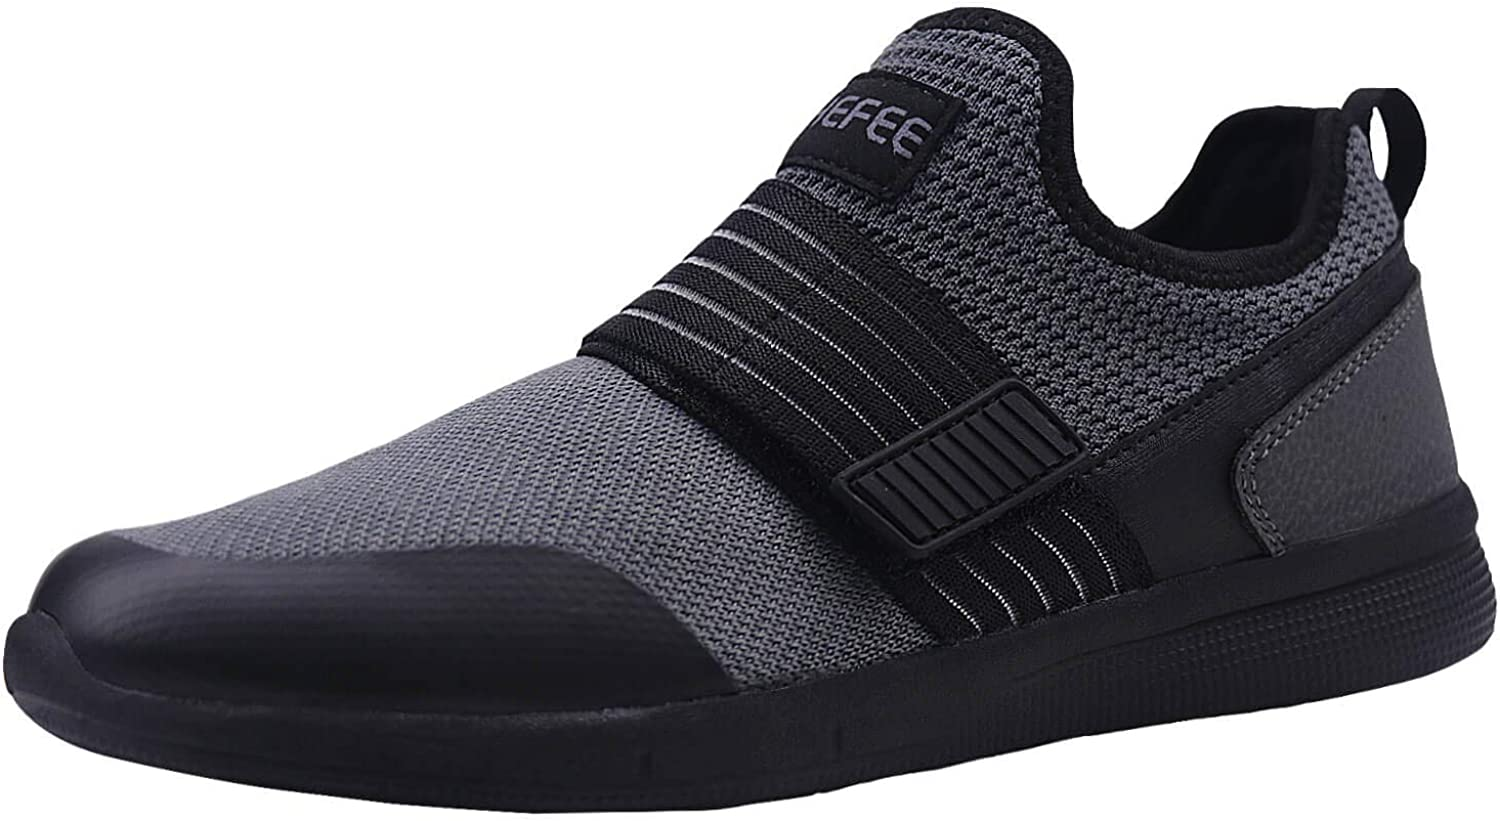 Phefee Mens Casual Lightweight Slip On Breathable Mesh Walking shoes Sneakers